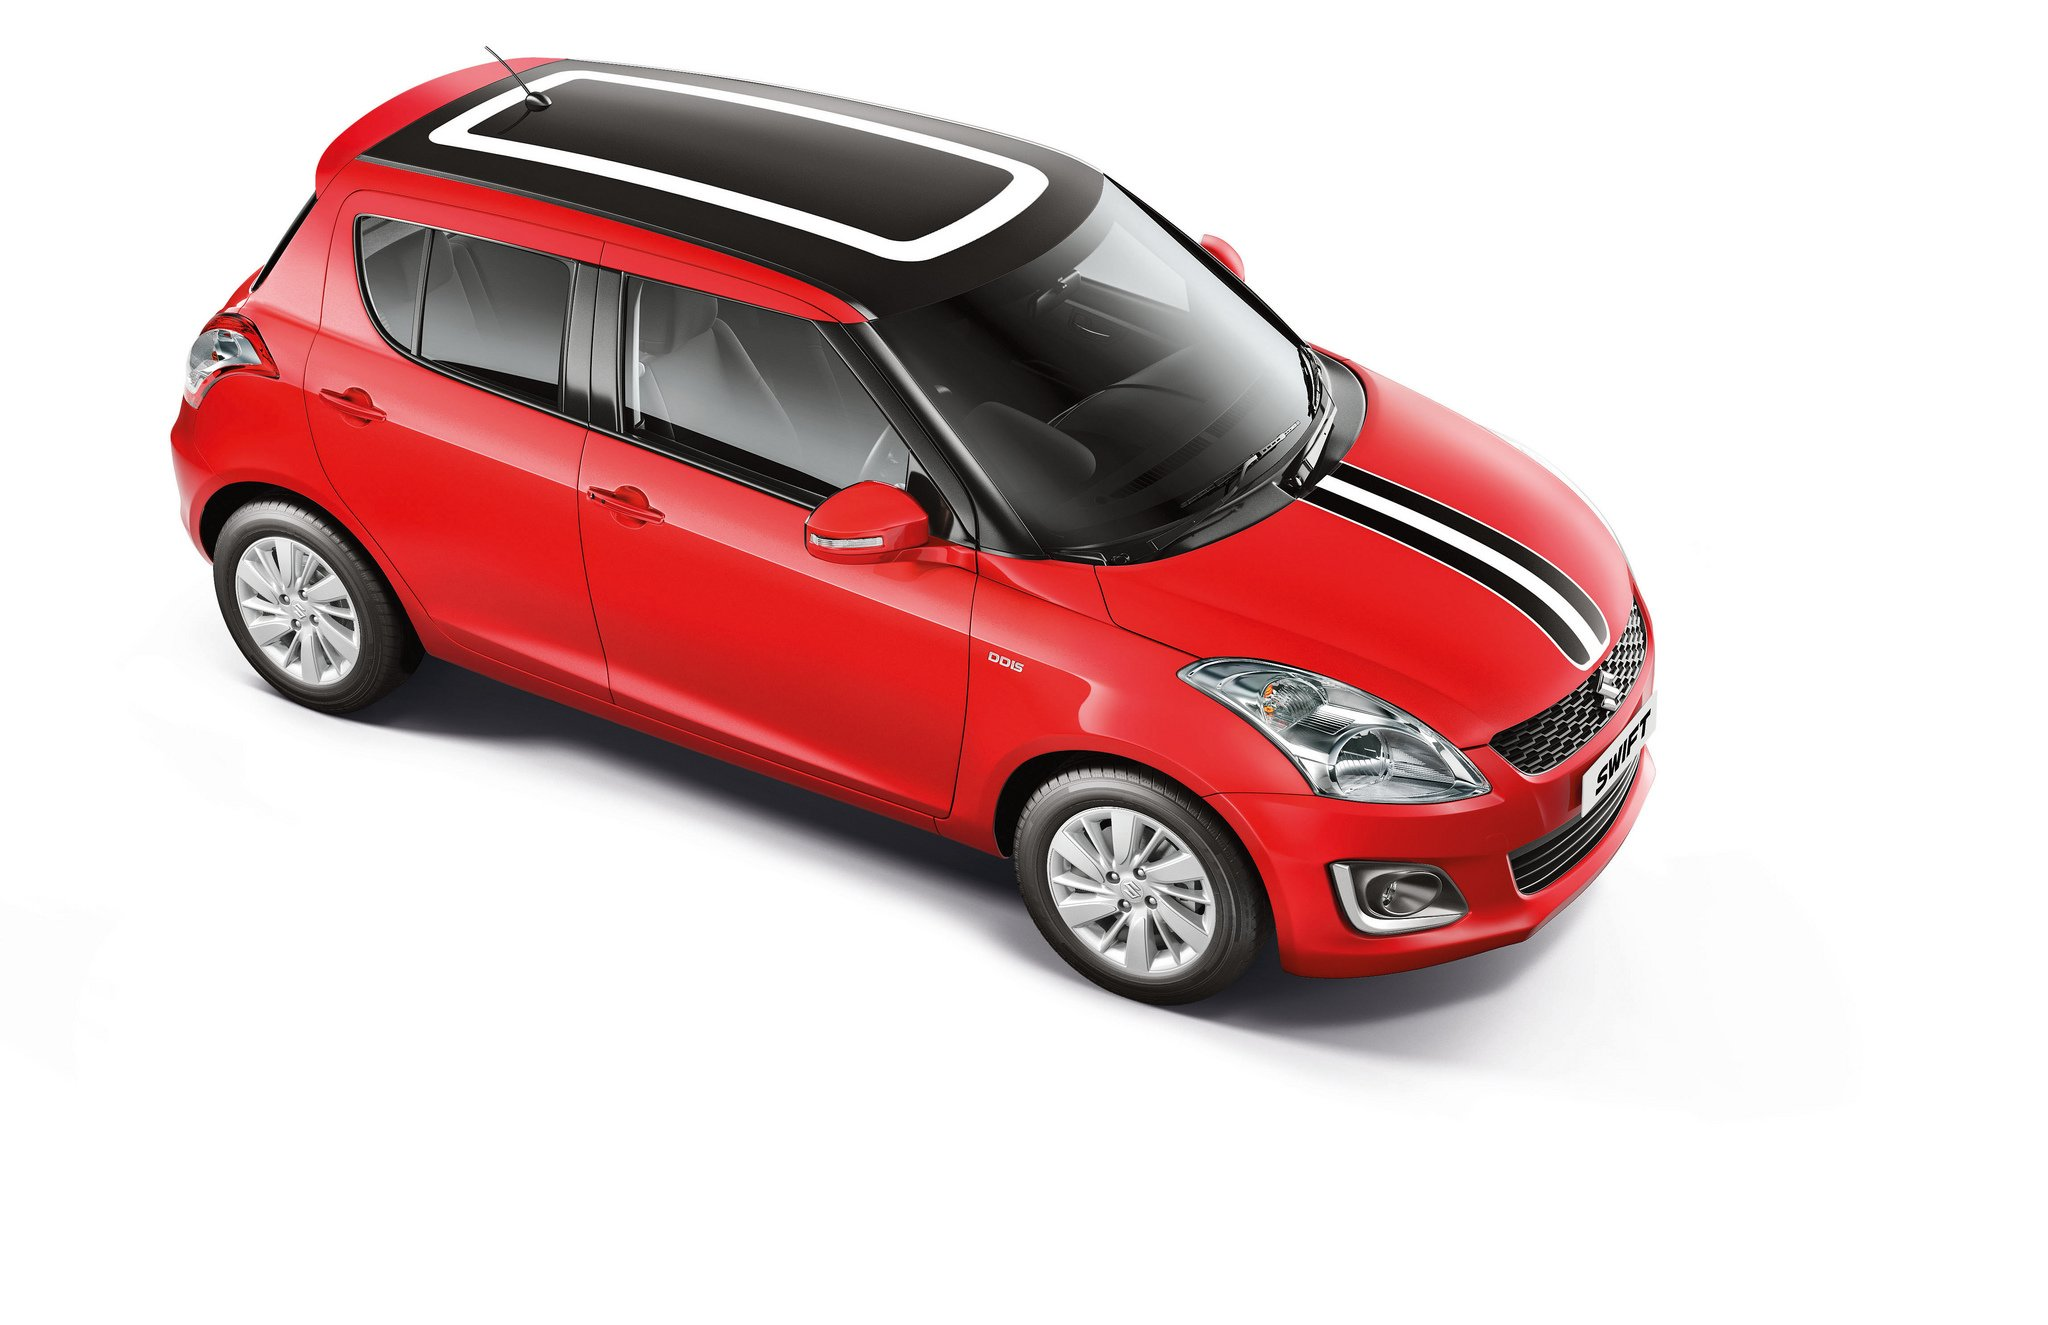 Modified Maruti Swift from i Create - Prices, Specs